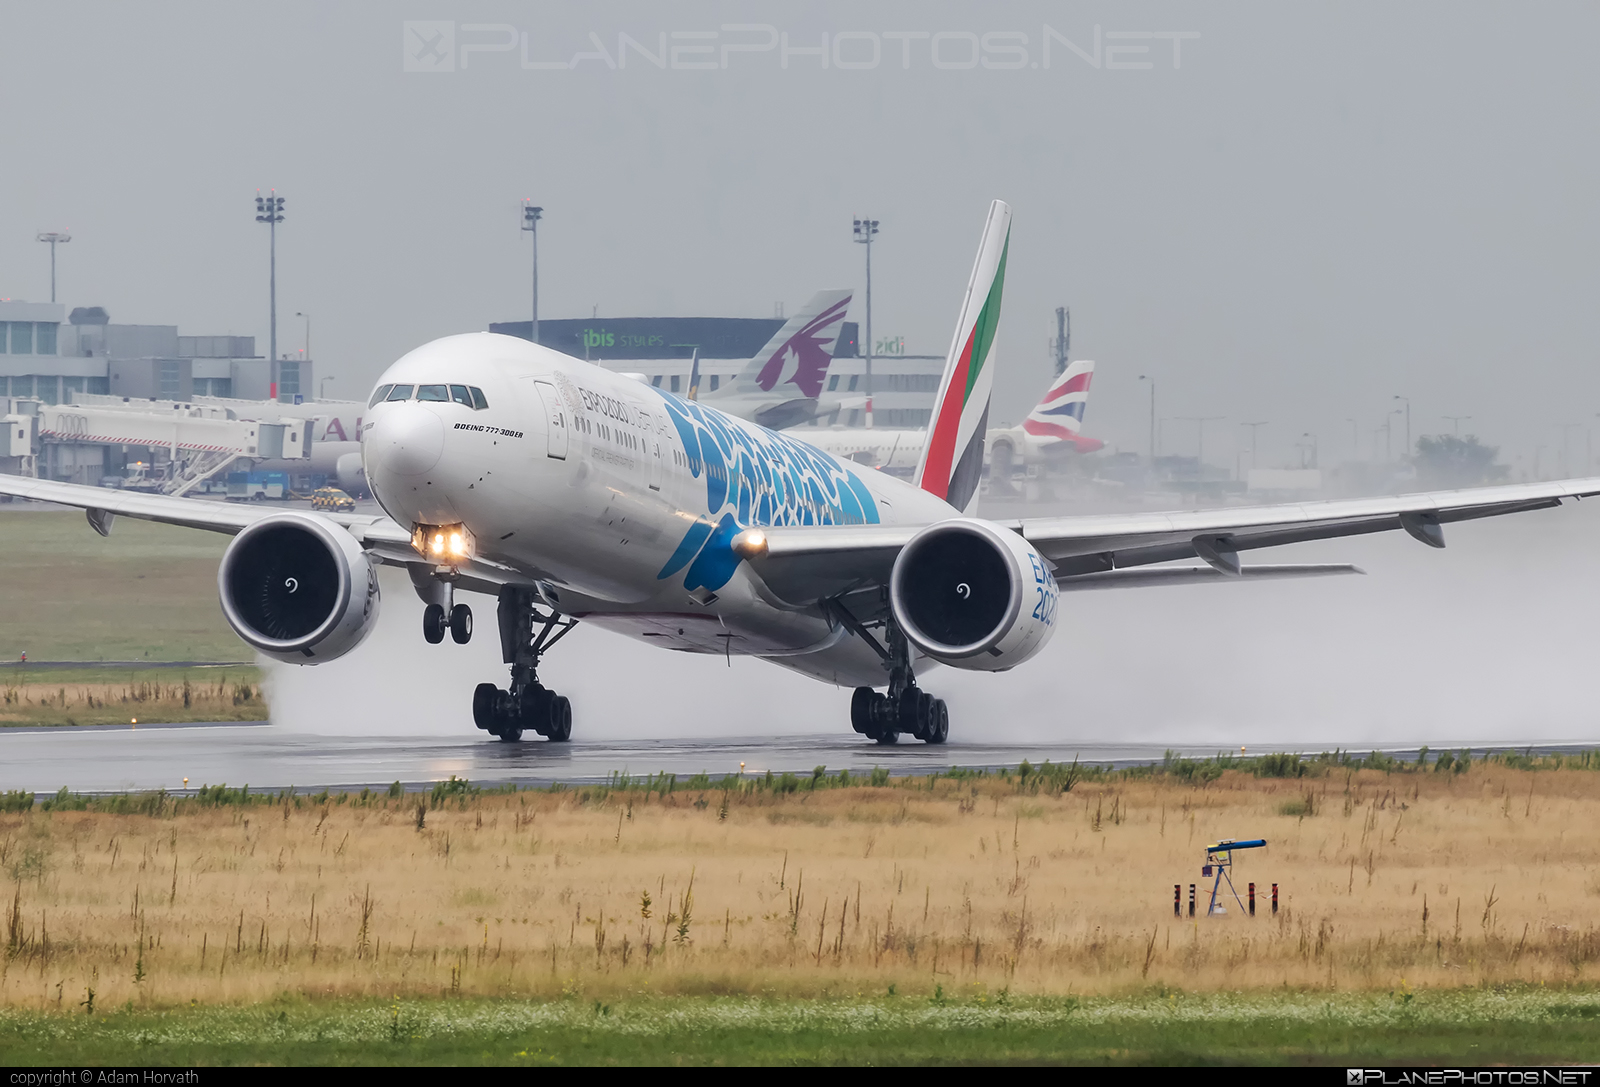 Boeing 777-300ER - A6-EPD operated by Emirates #b777 #b777er #boeing #boeing777 #emirates #tripleseven